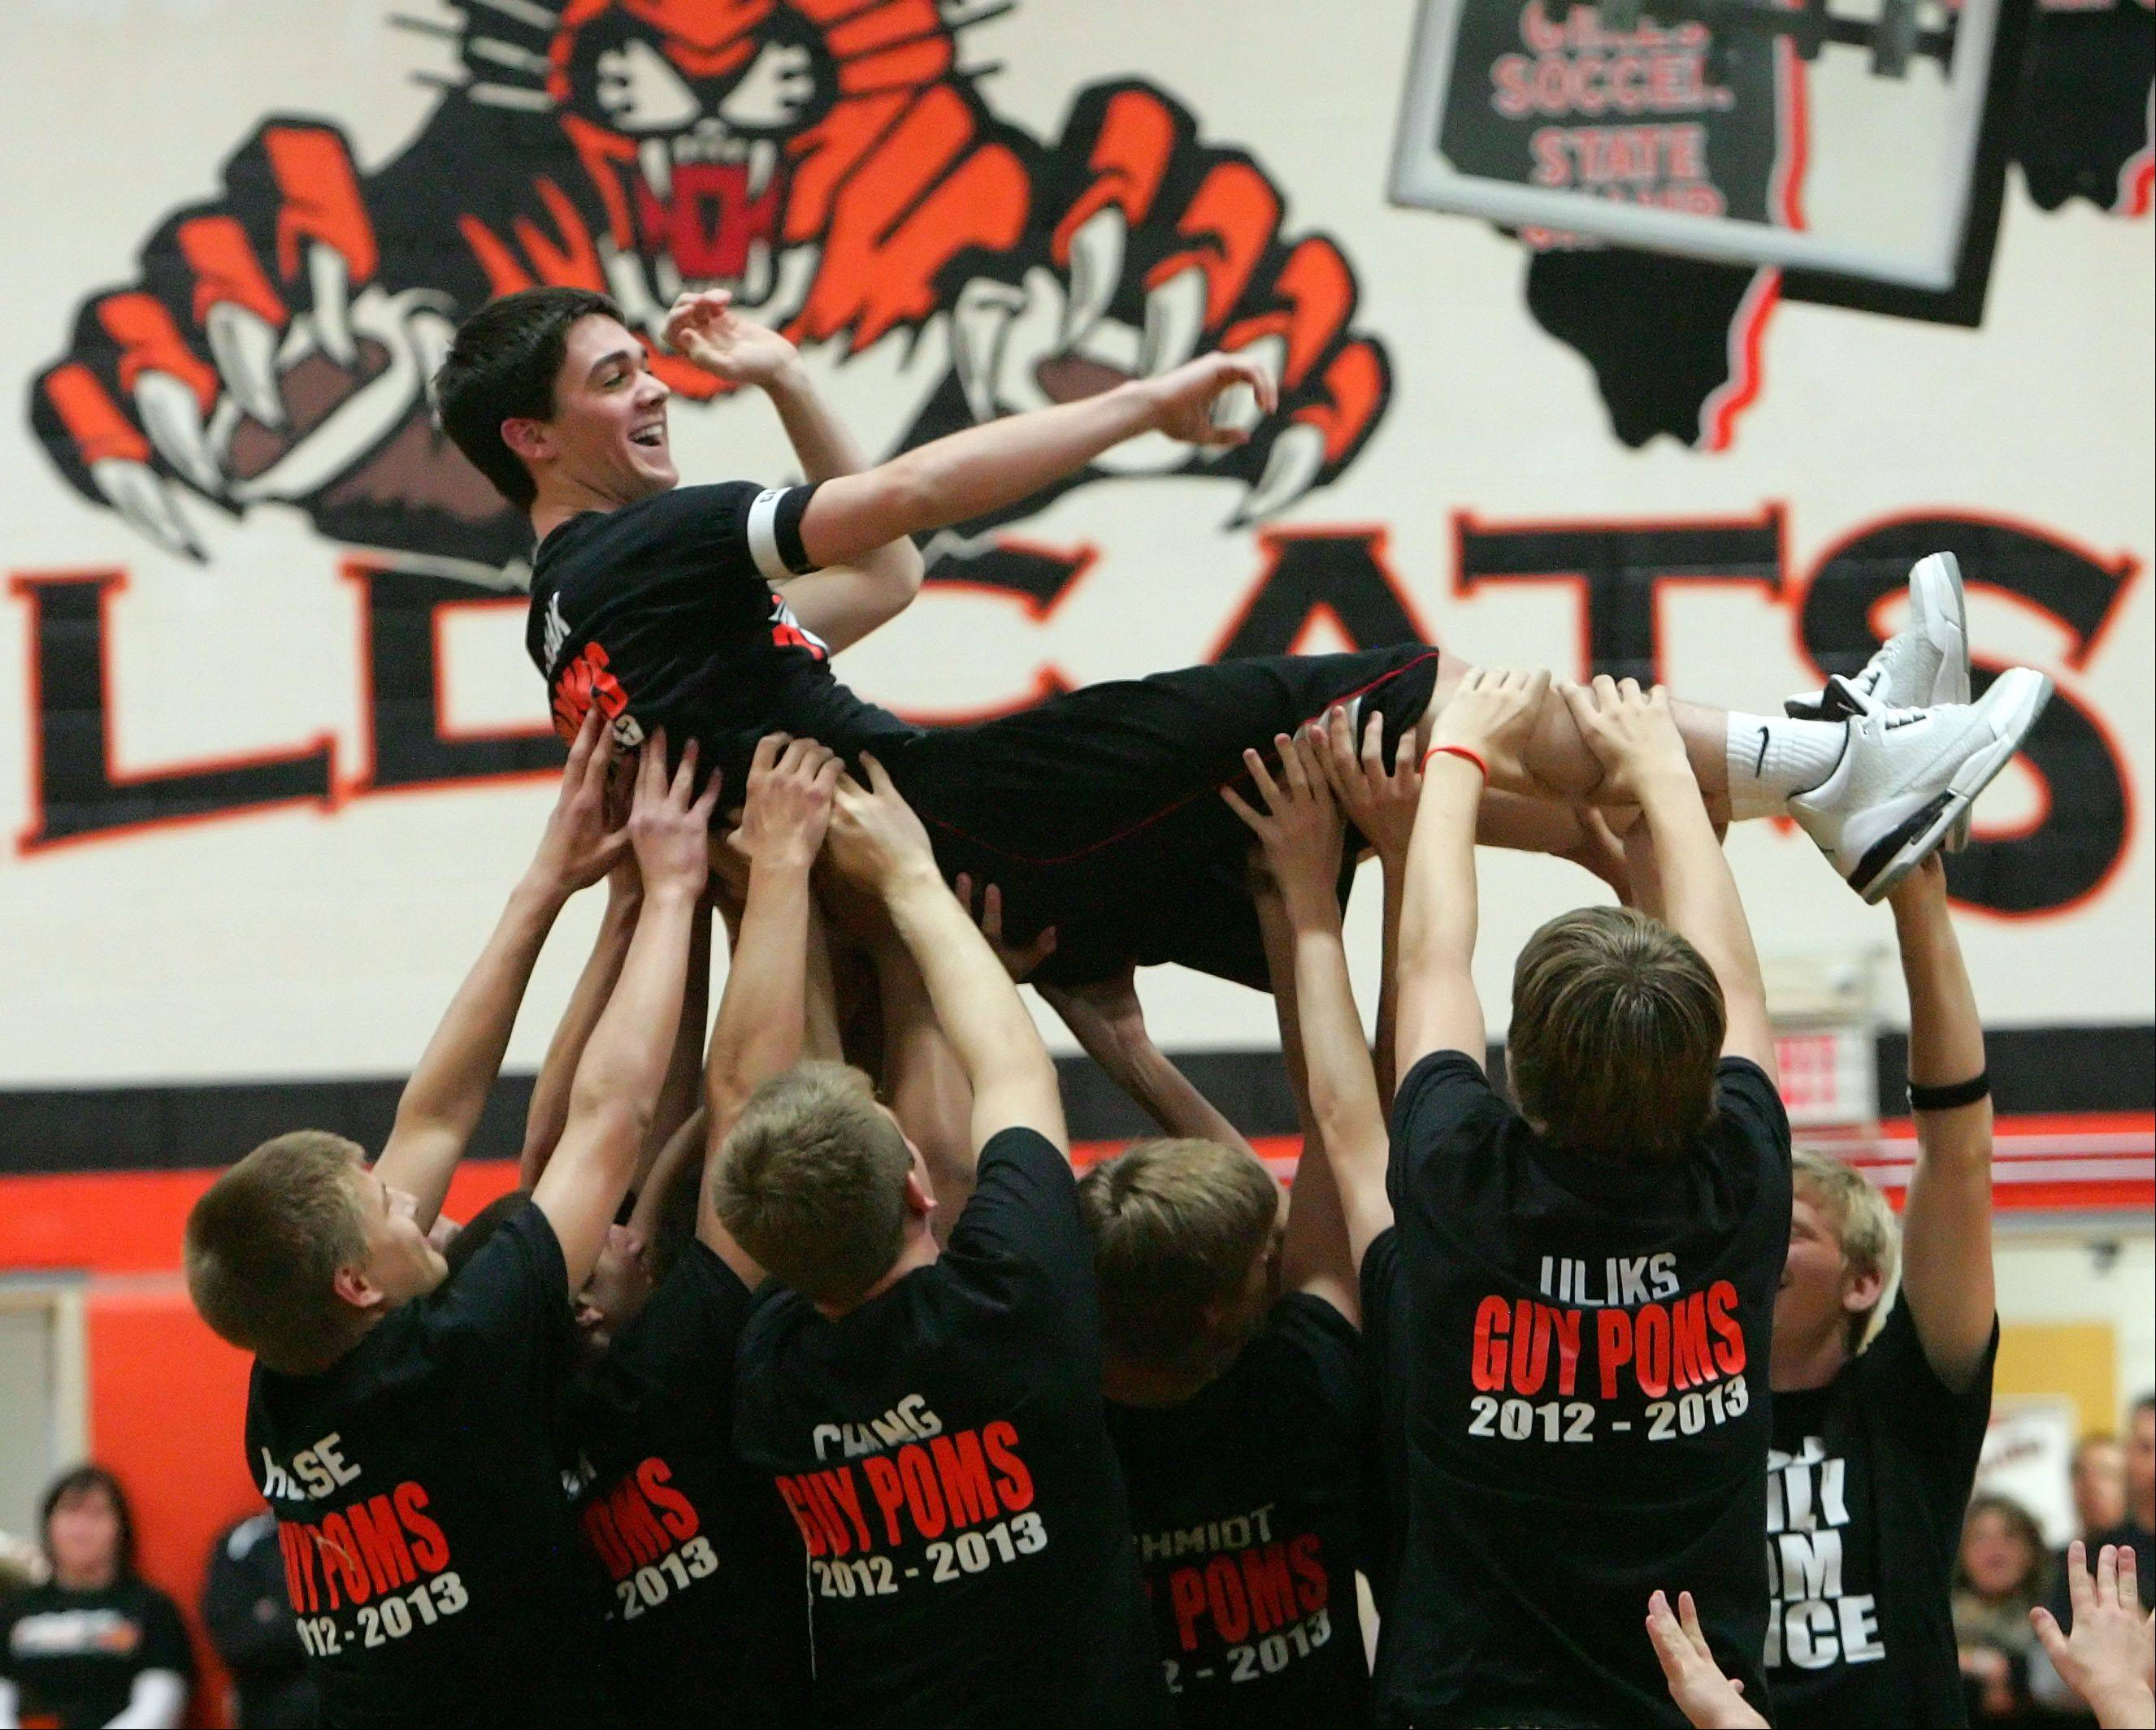 Libertyville High School senior Scott Johns is hoisted up by guy poms during their Homecoming pep rally.